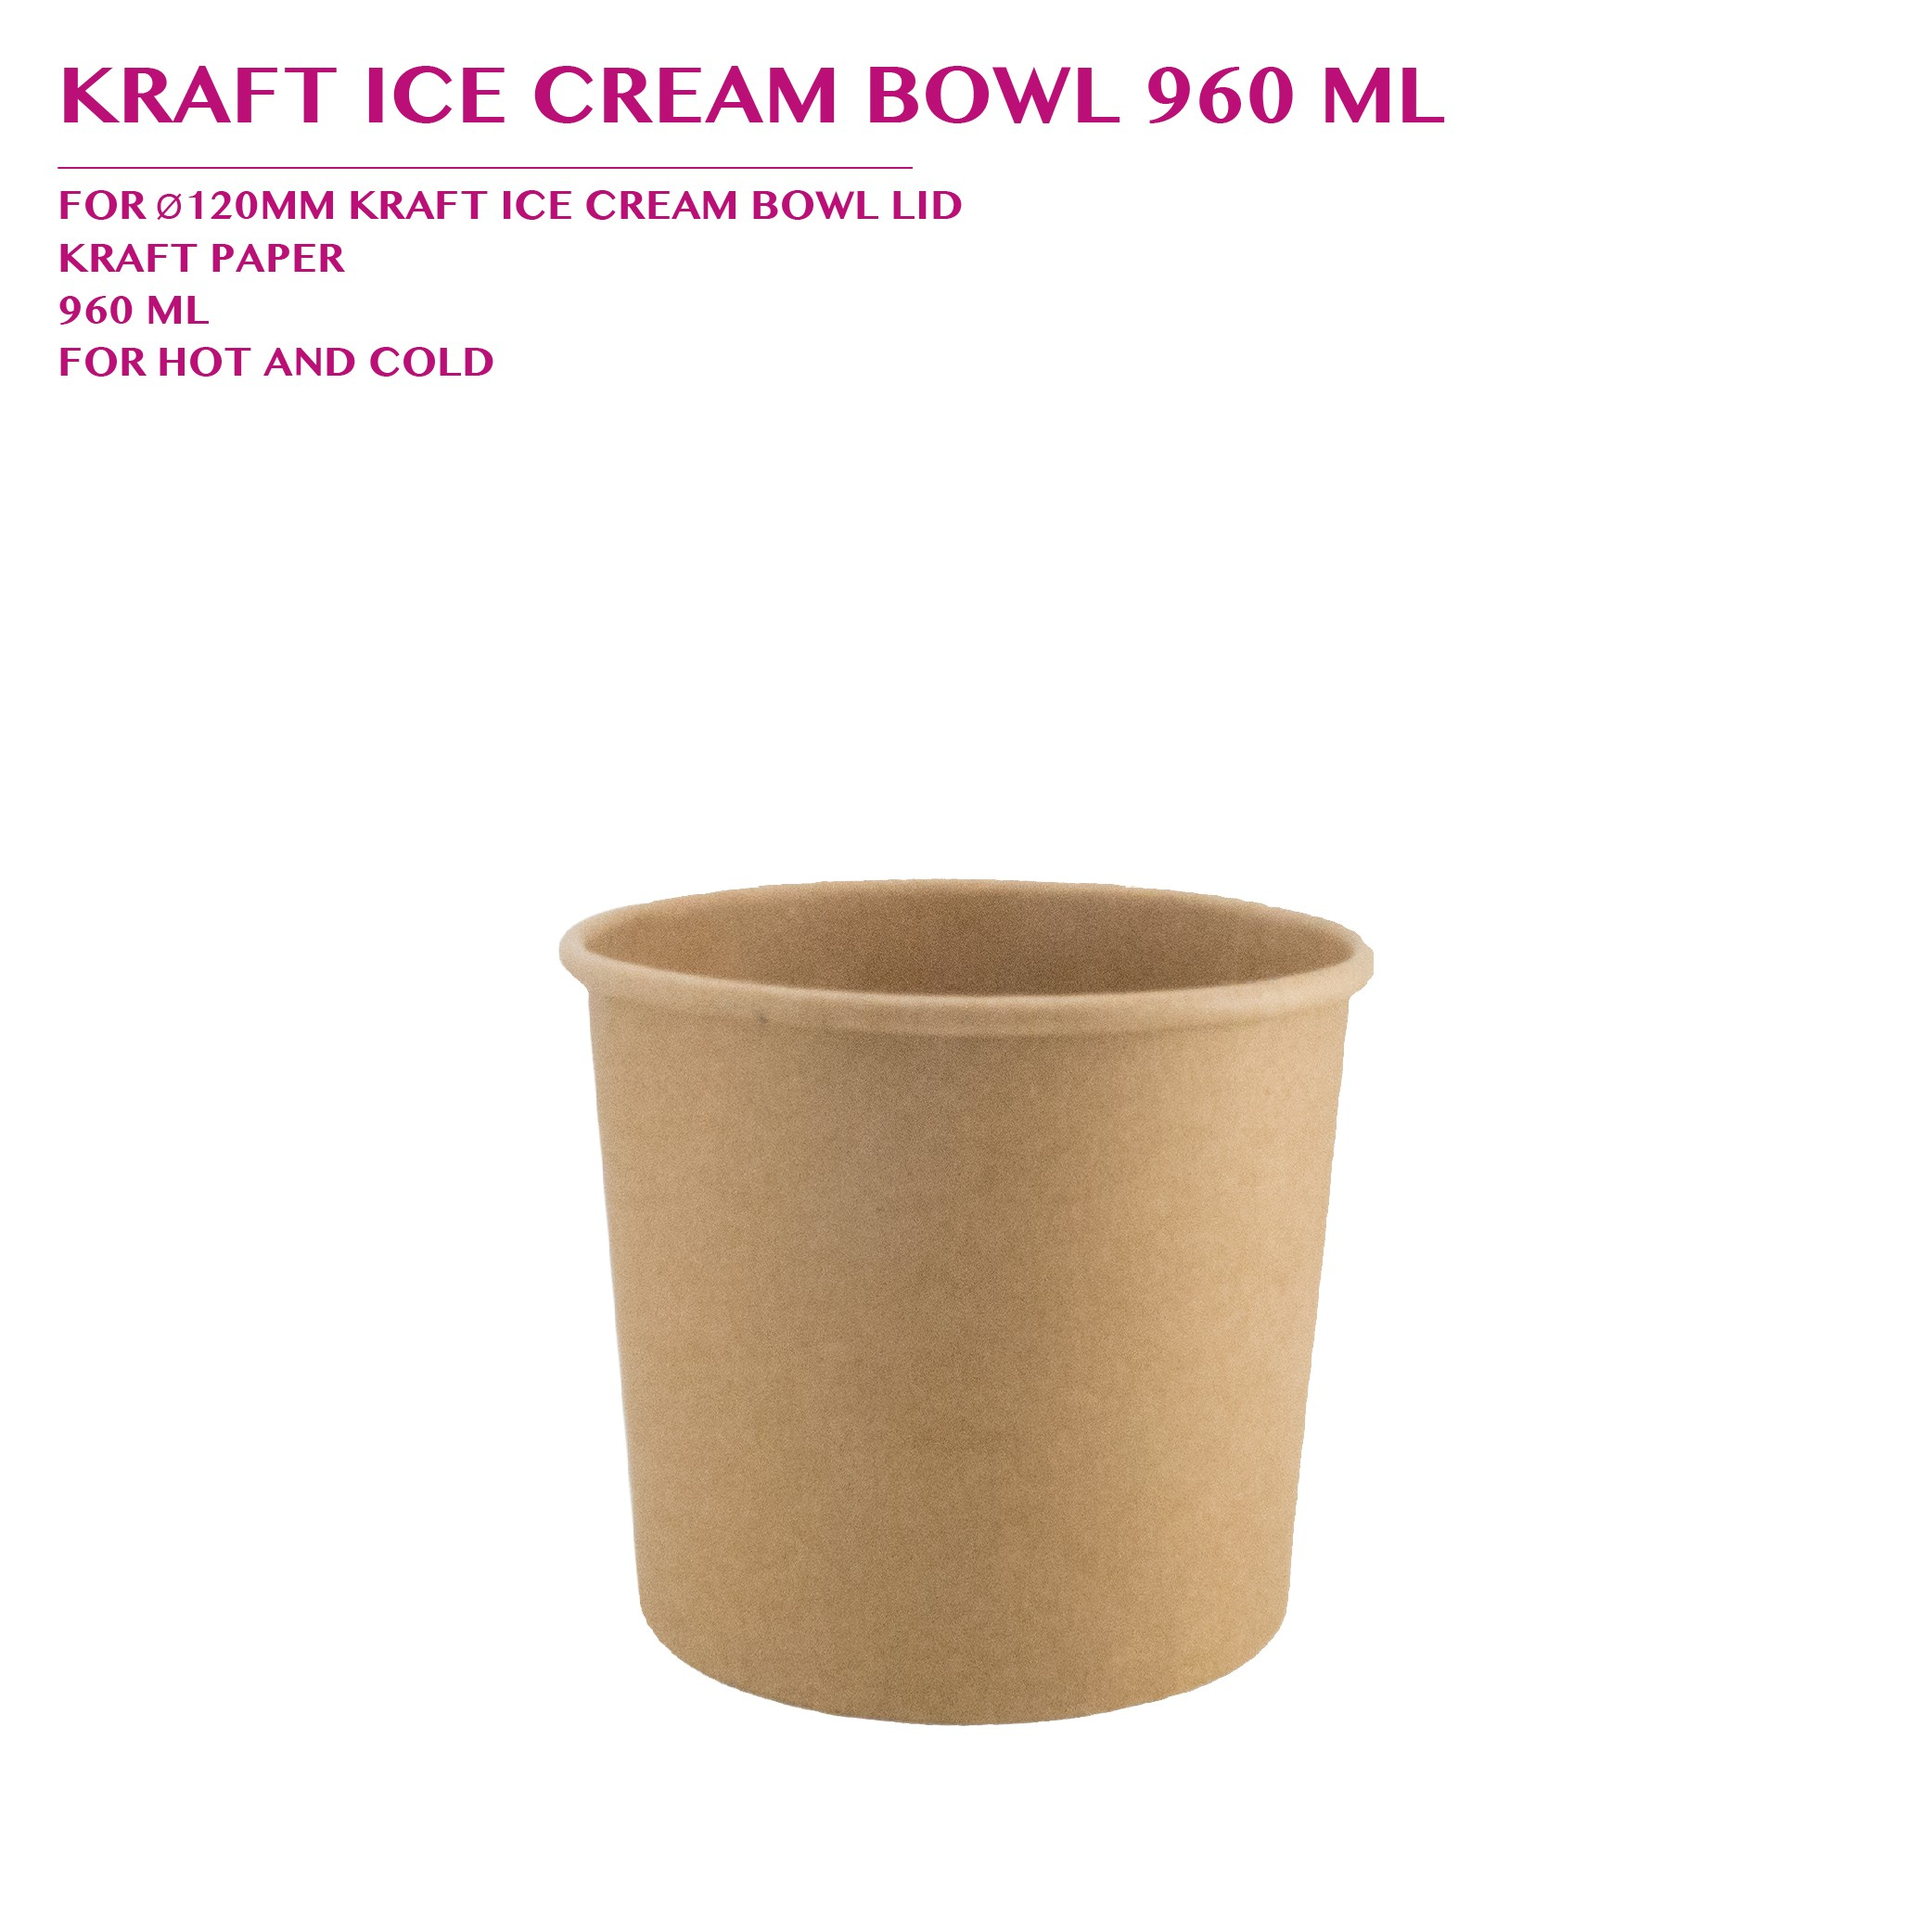 PRE-ORDER KRAFT ICE CREAM BOWL 960 ML PCS/CTN